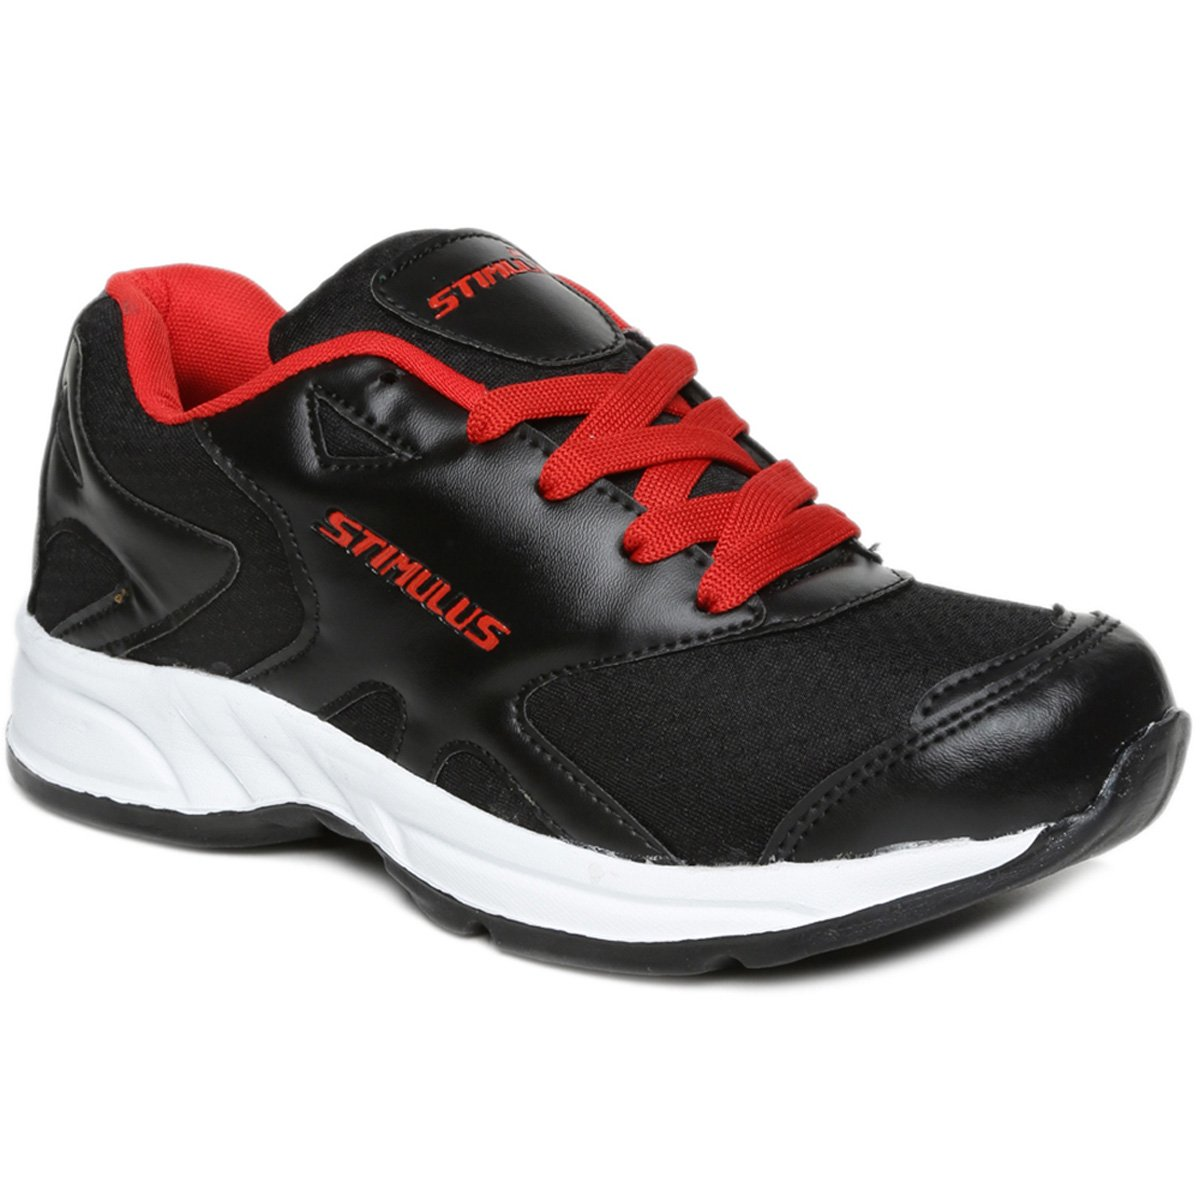 fda197f84 PARAGON Stimulus Men's Black & Red Sports Shoes: Buy Online at Low Prices  in India - Amazon.in